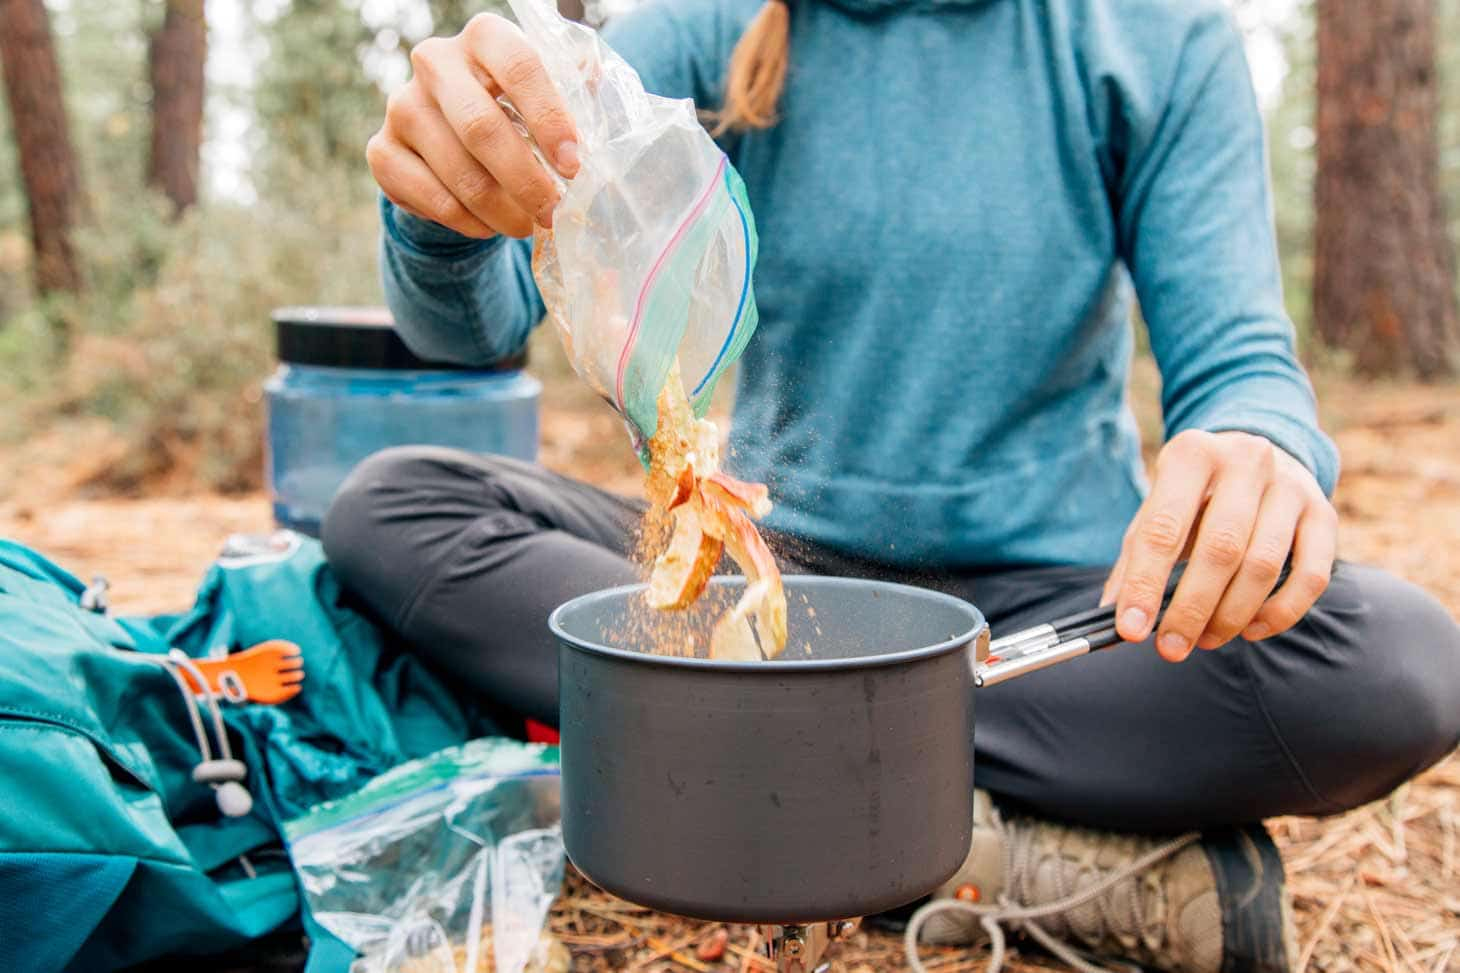 Woman pouring apples into a backpacking pot